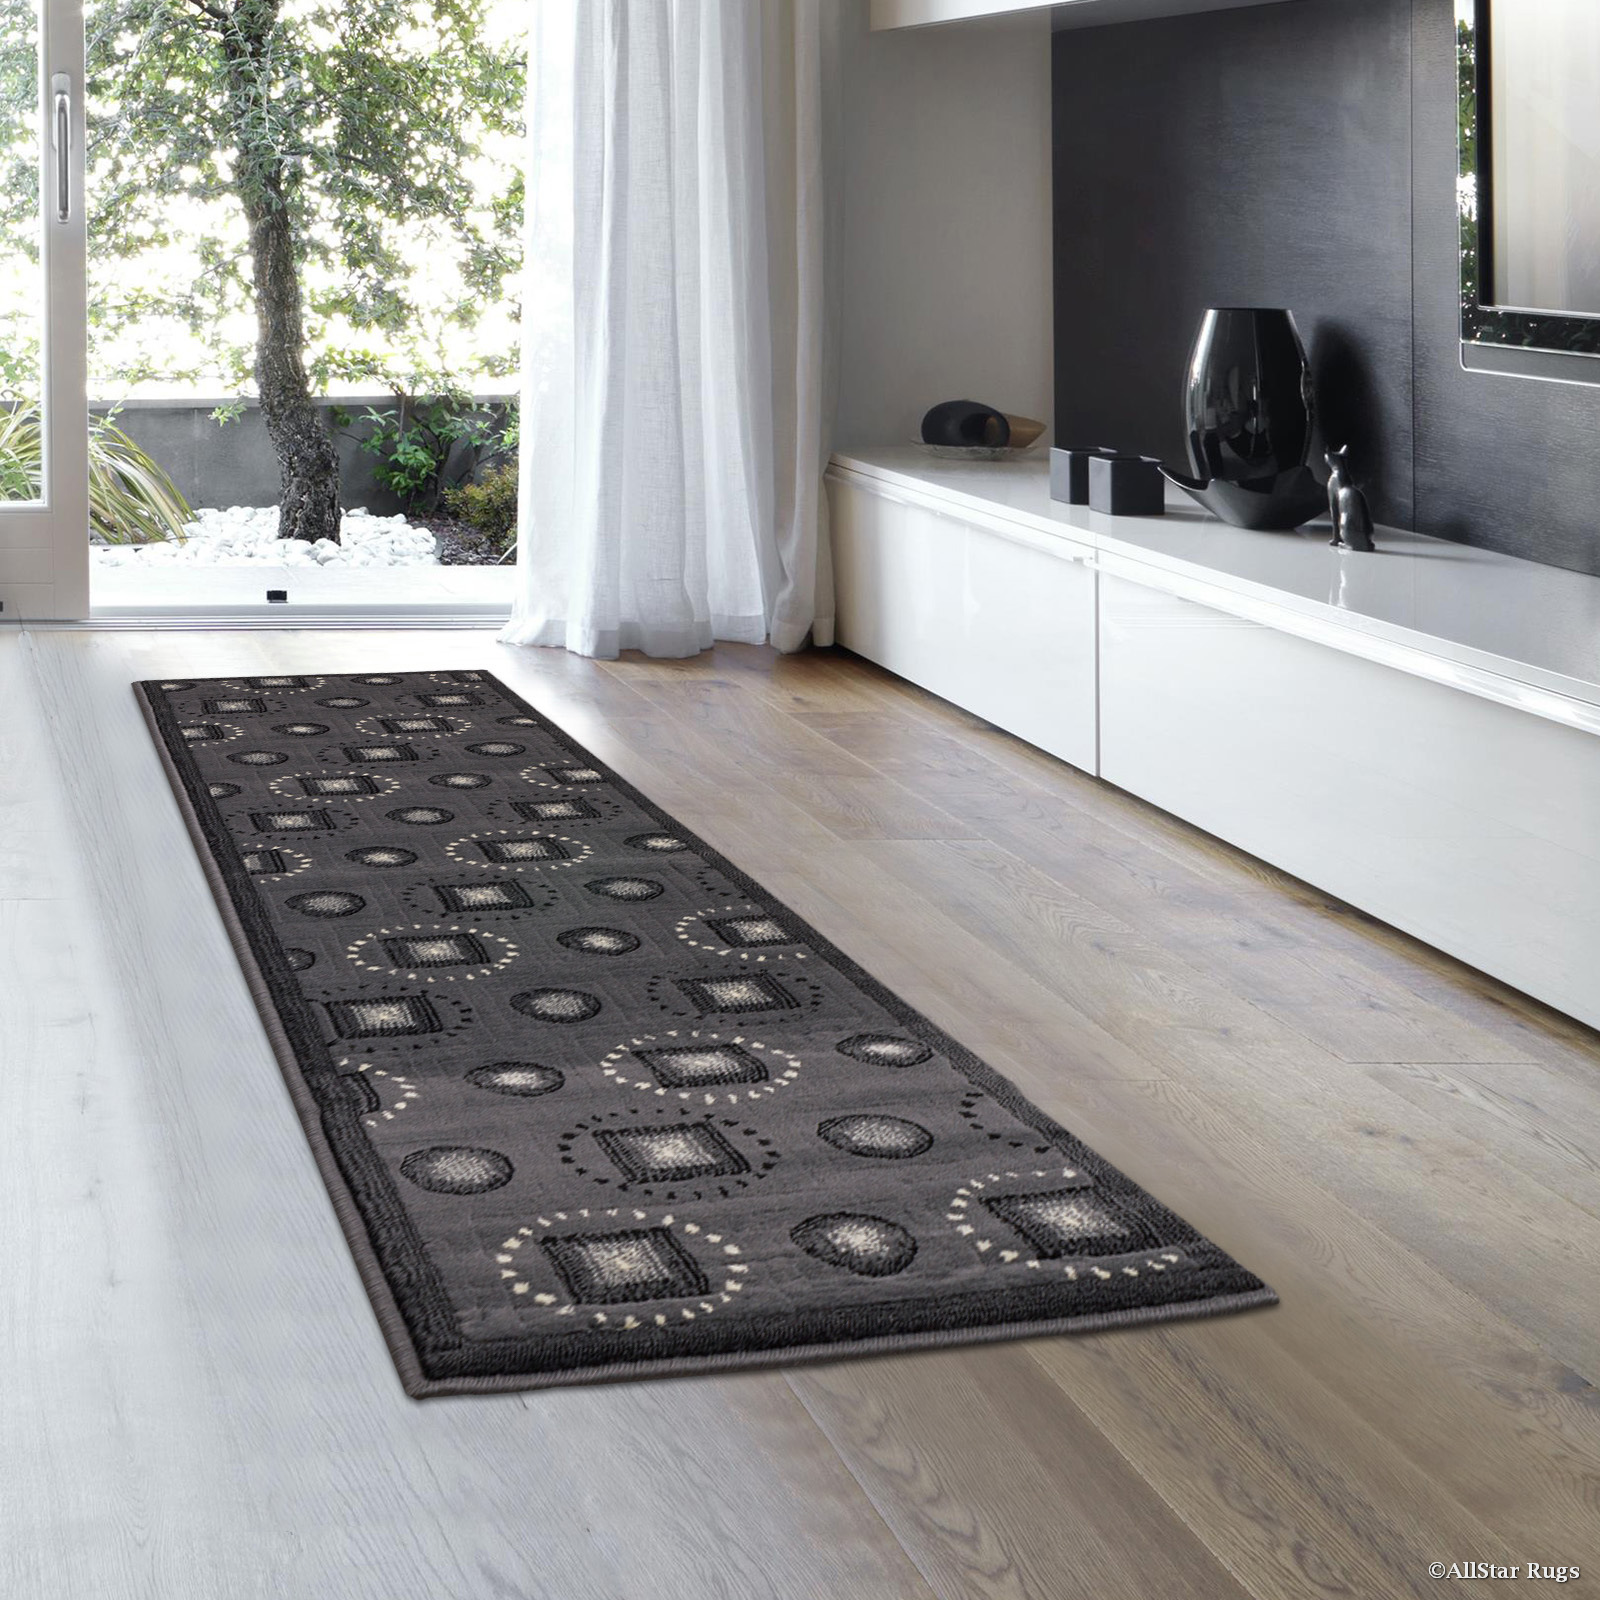 "Allstar Grey Abstract Modern Area Carpet Rug - Runner (2' 0"" x 7' 2"")"